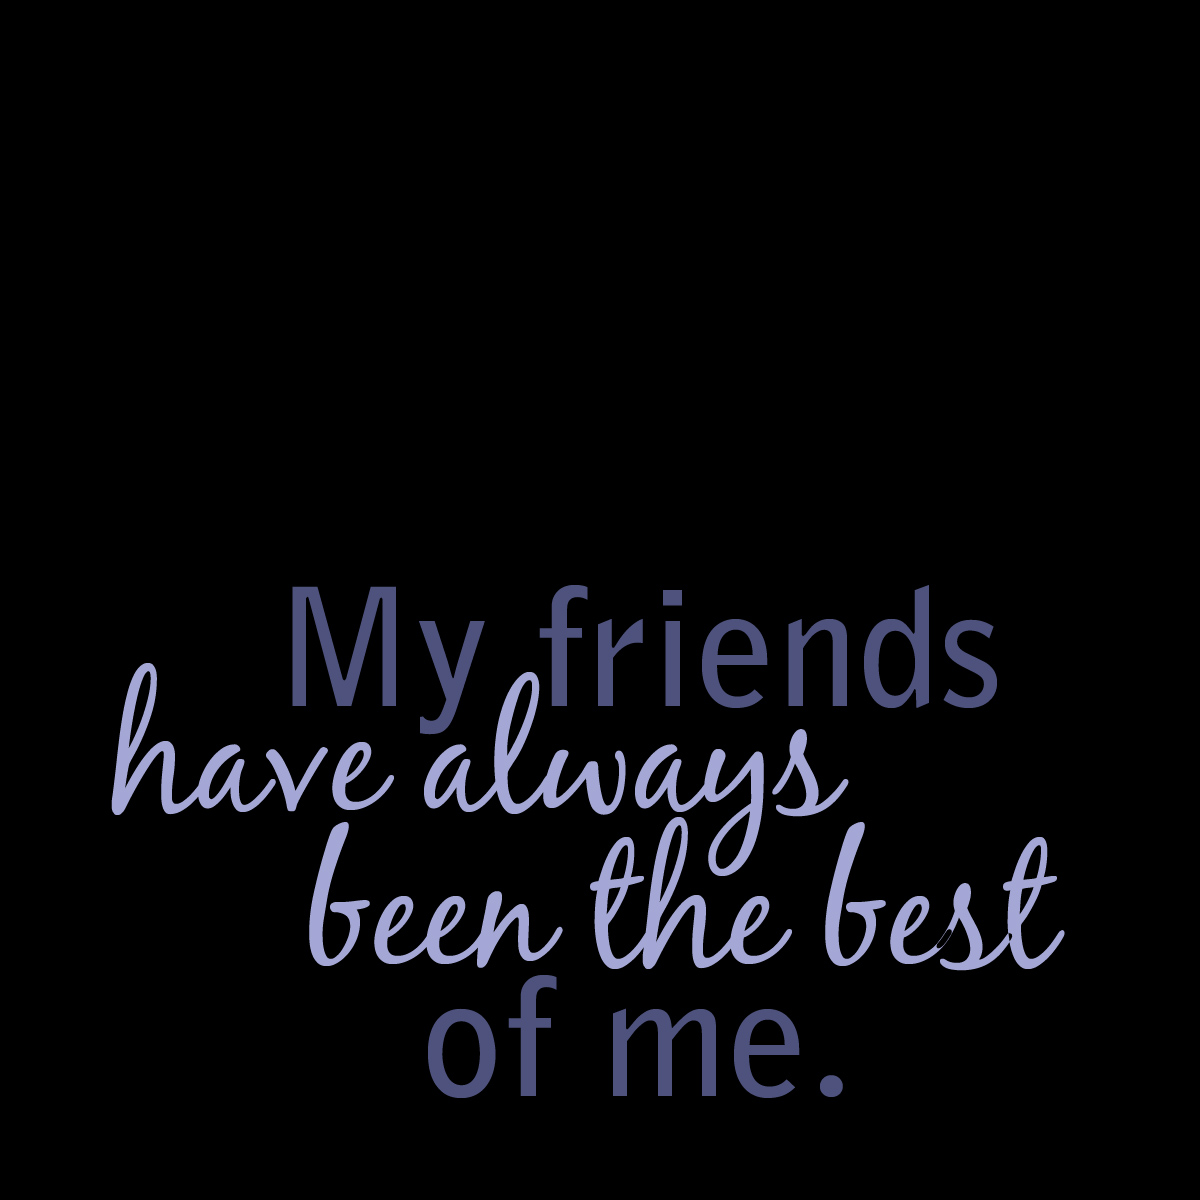 Famous Quote About Friendship Extraordinary Friendship Hd Image And Quotes Download Friendship Wallpapers And